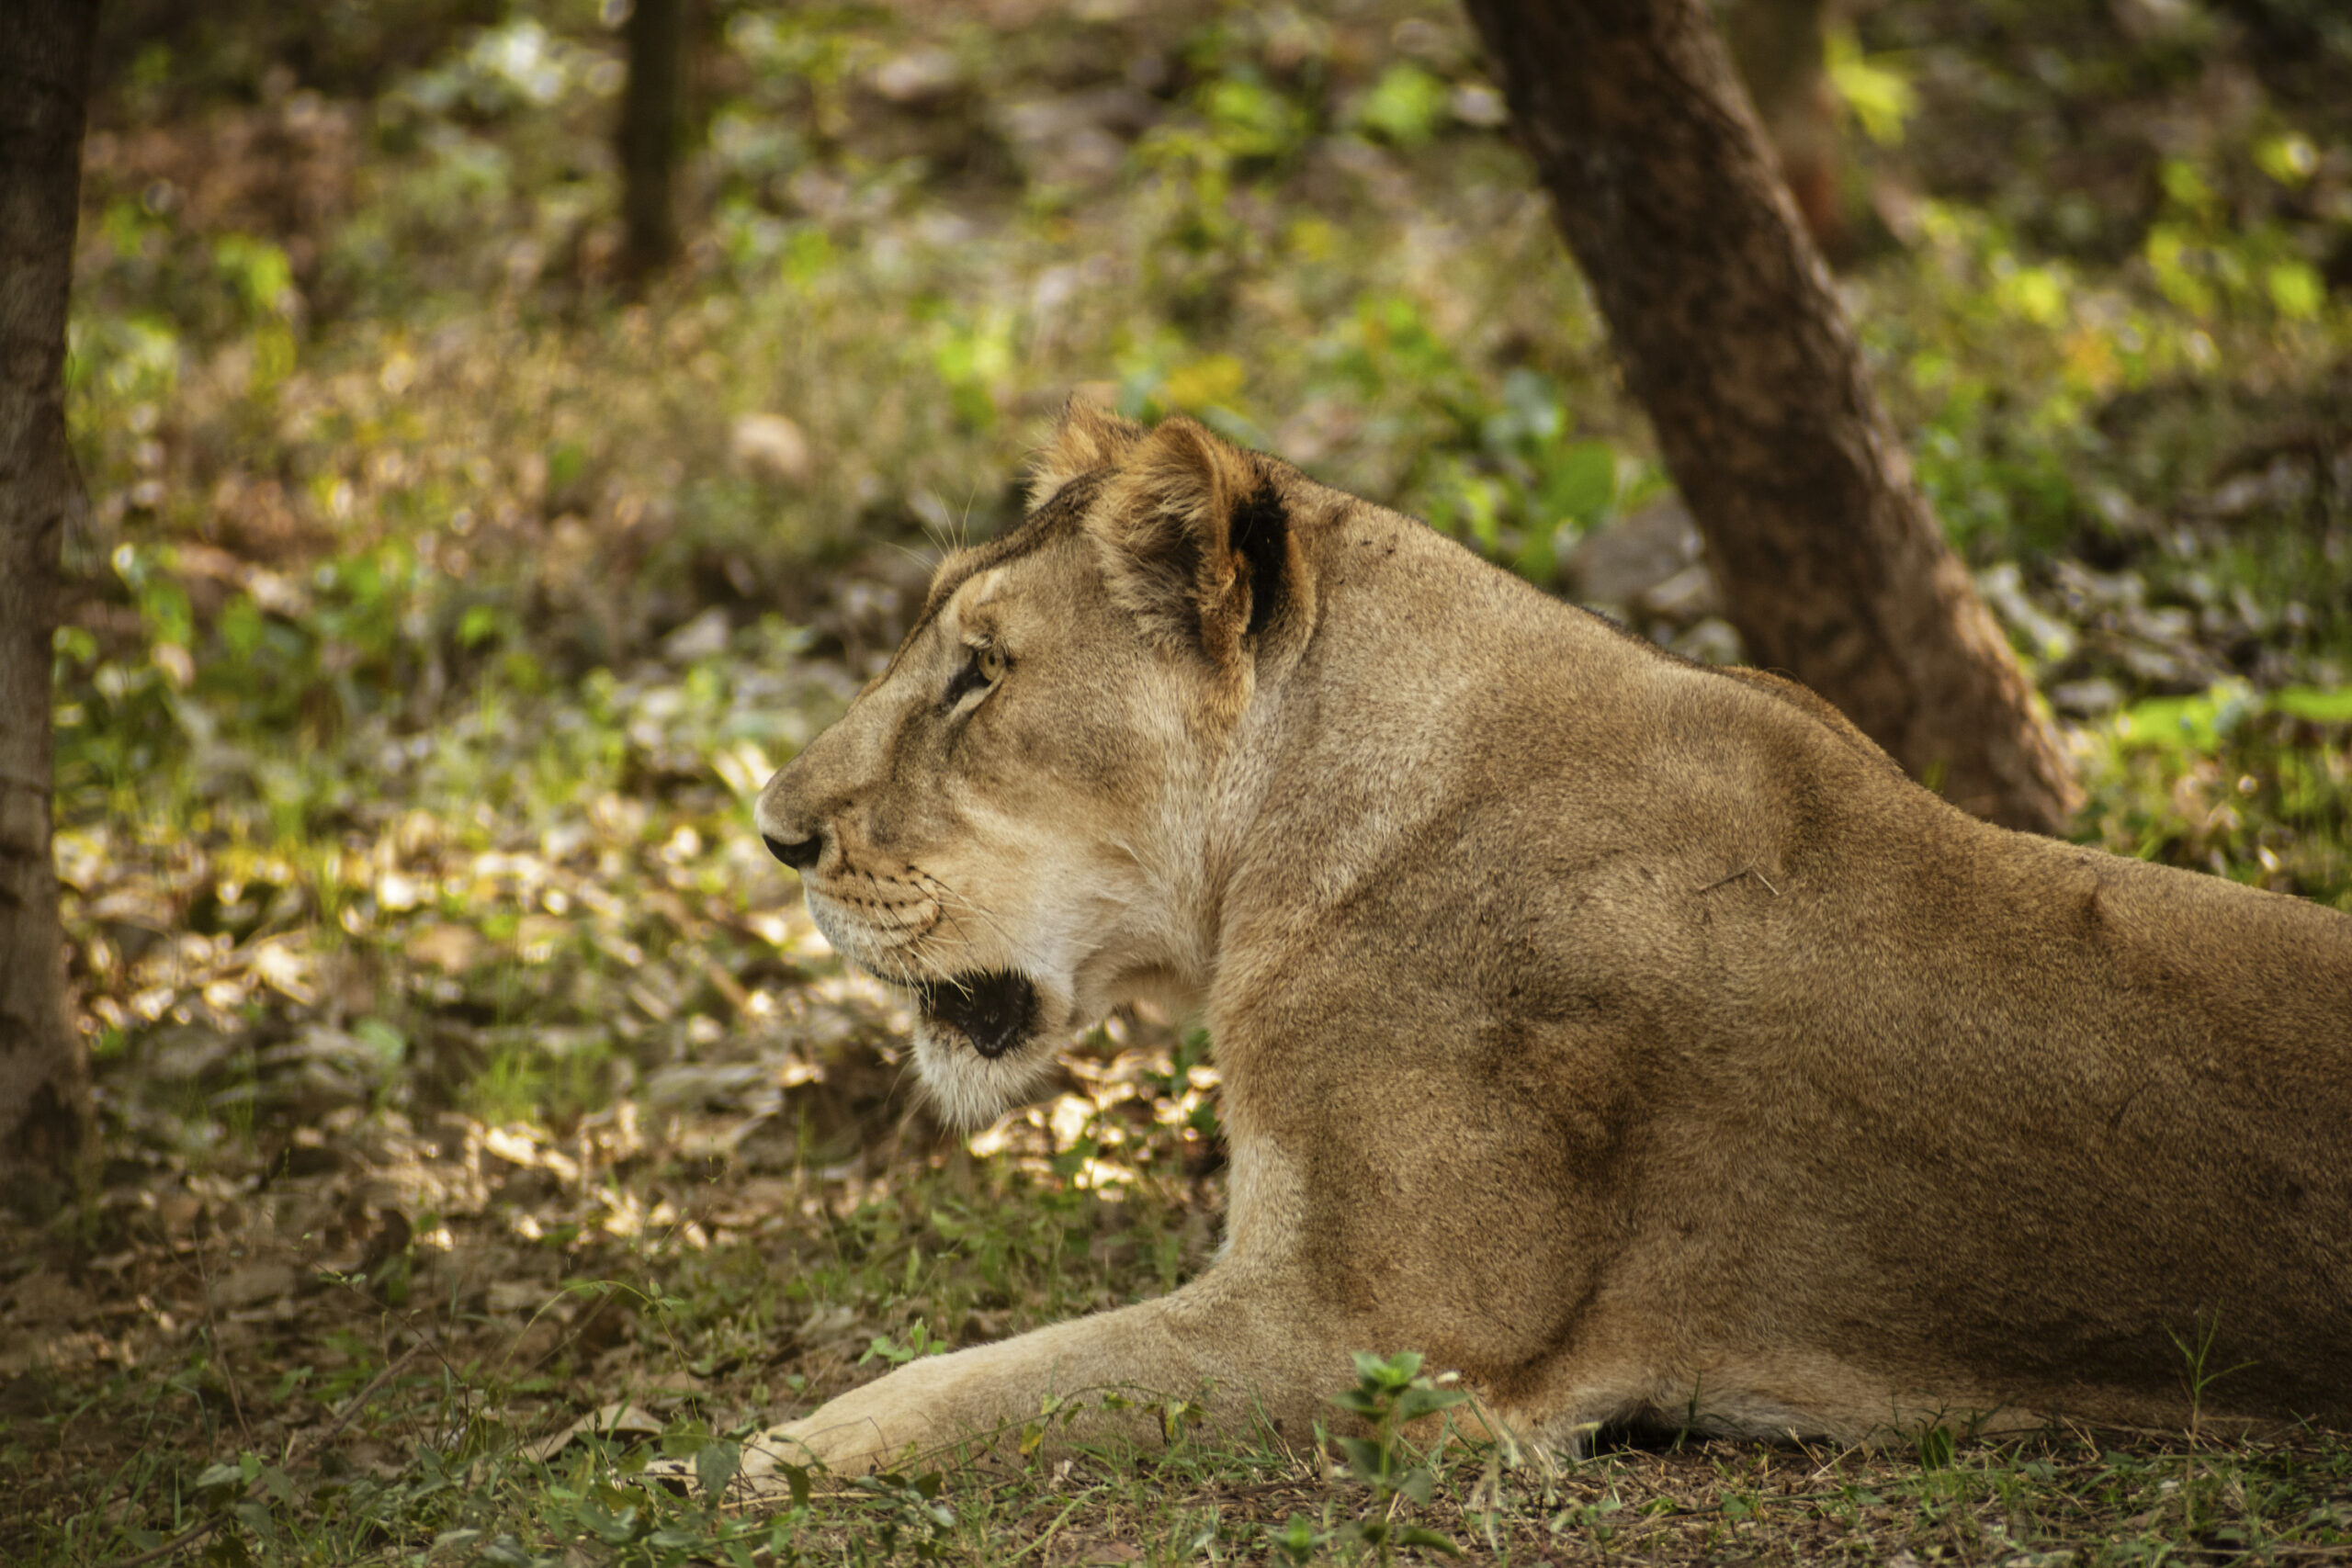 India Reports First Animal Death Due To Covid Despite Shut Zoos